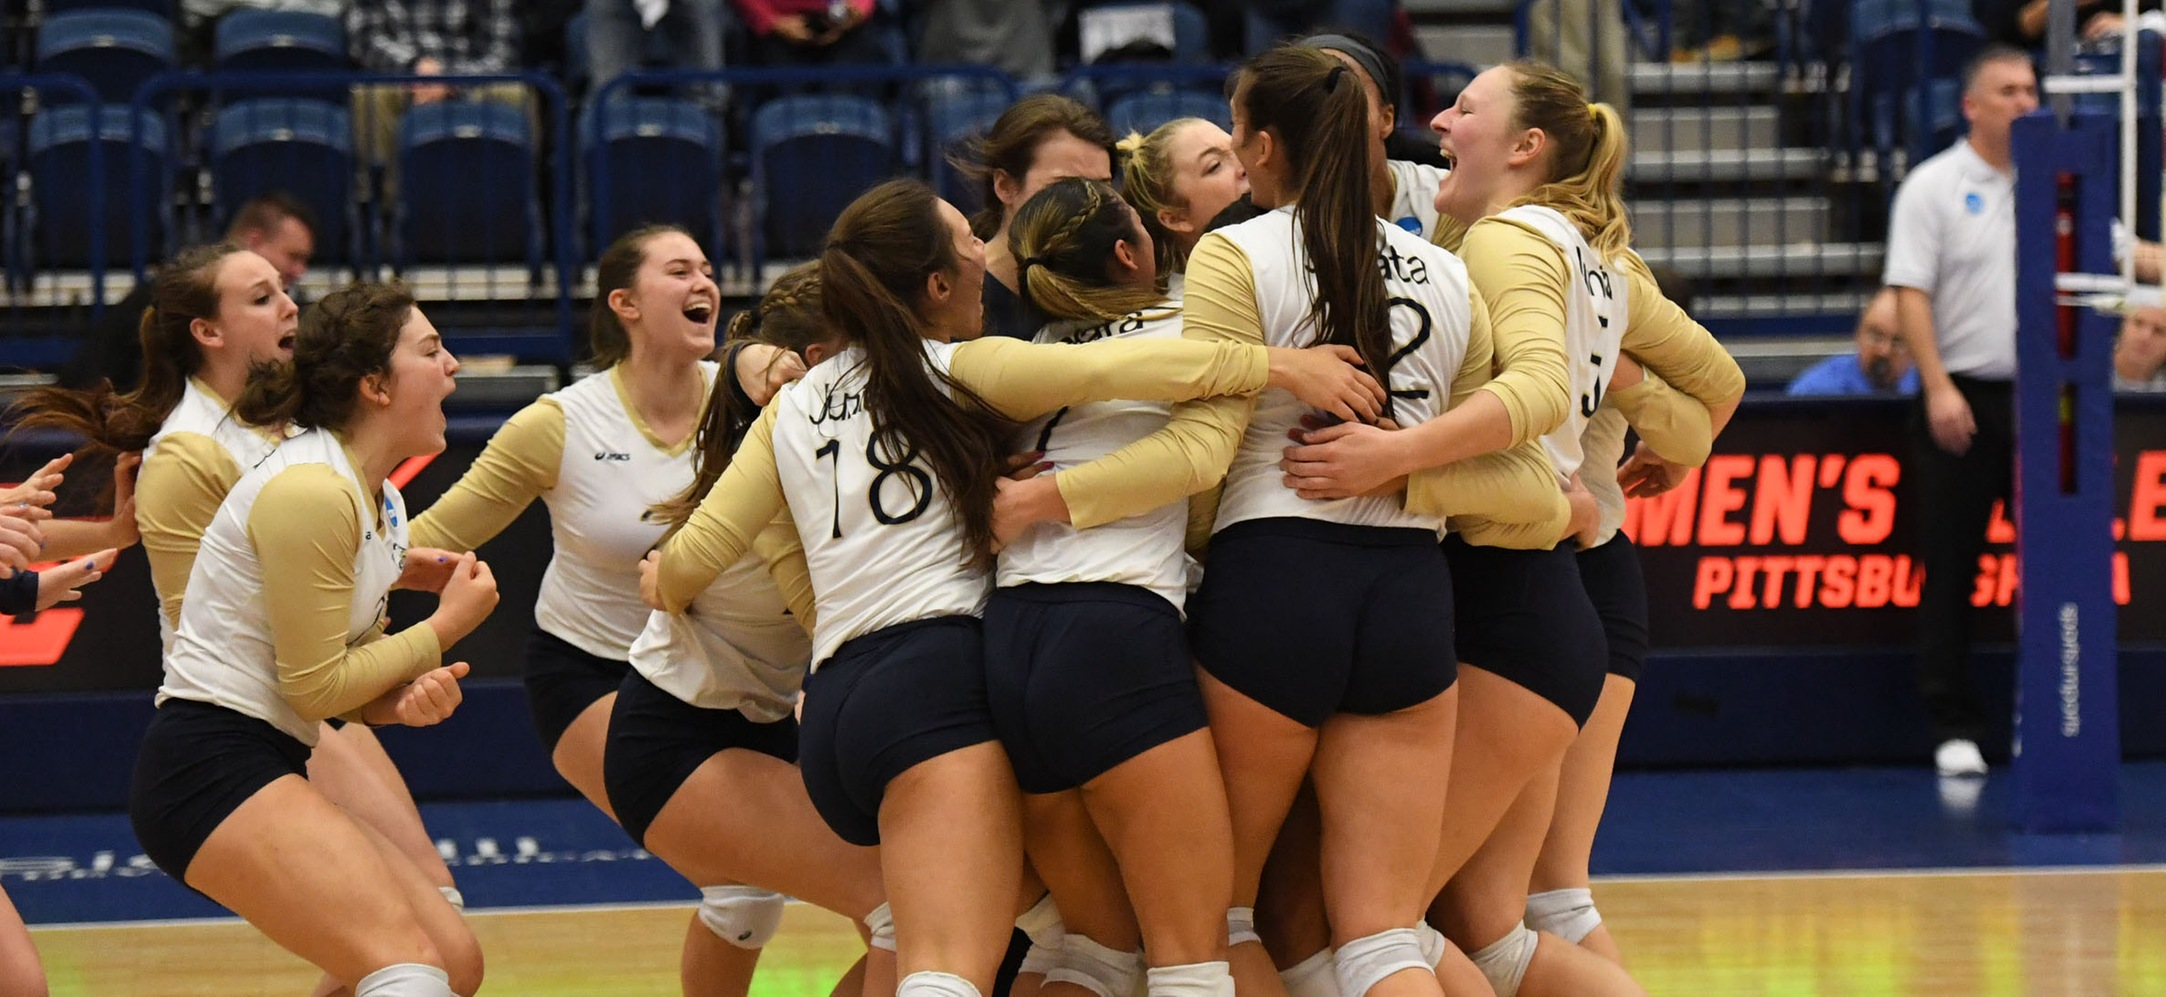 Women's Volleyball is excited to move on.